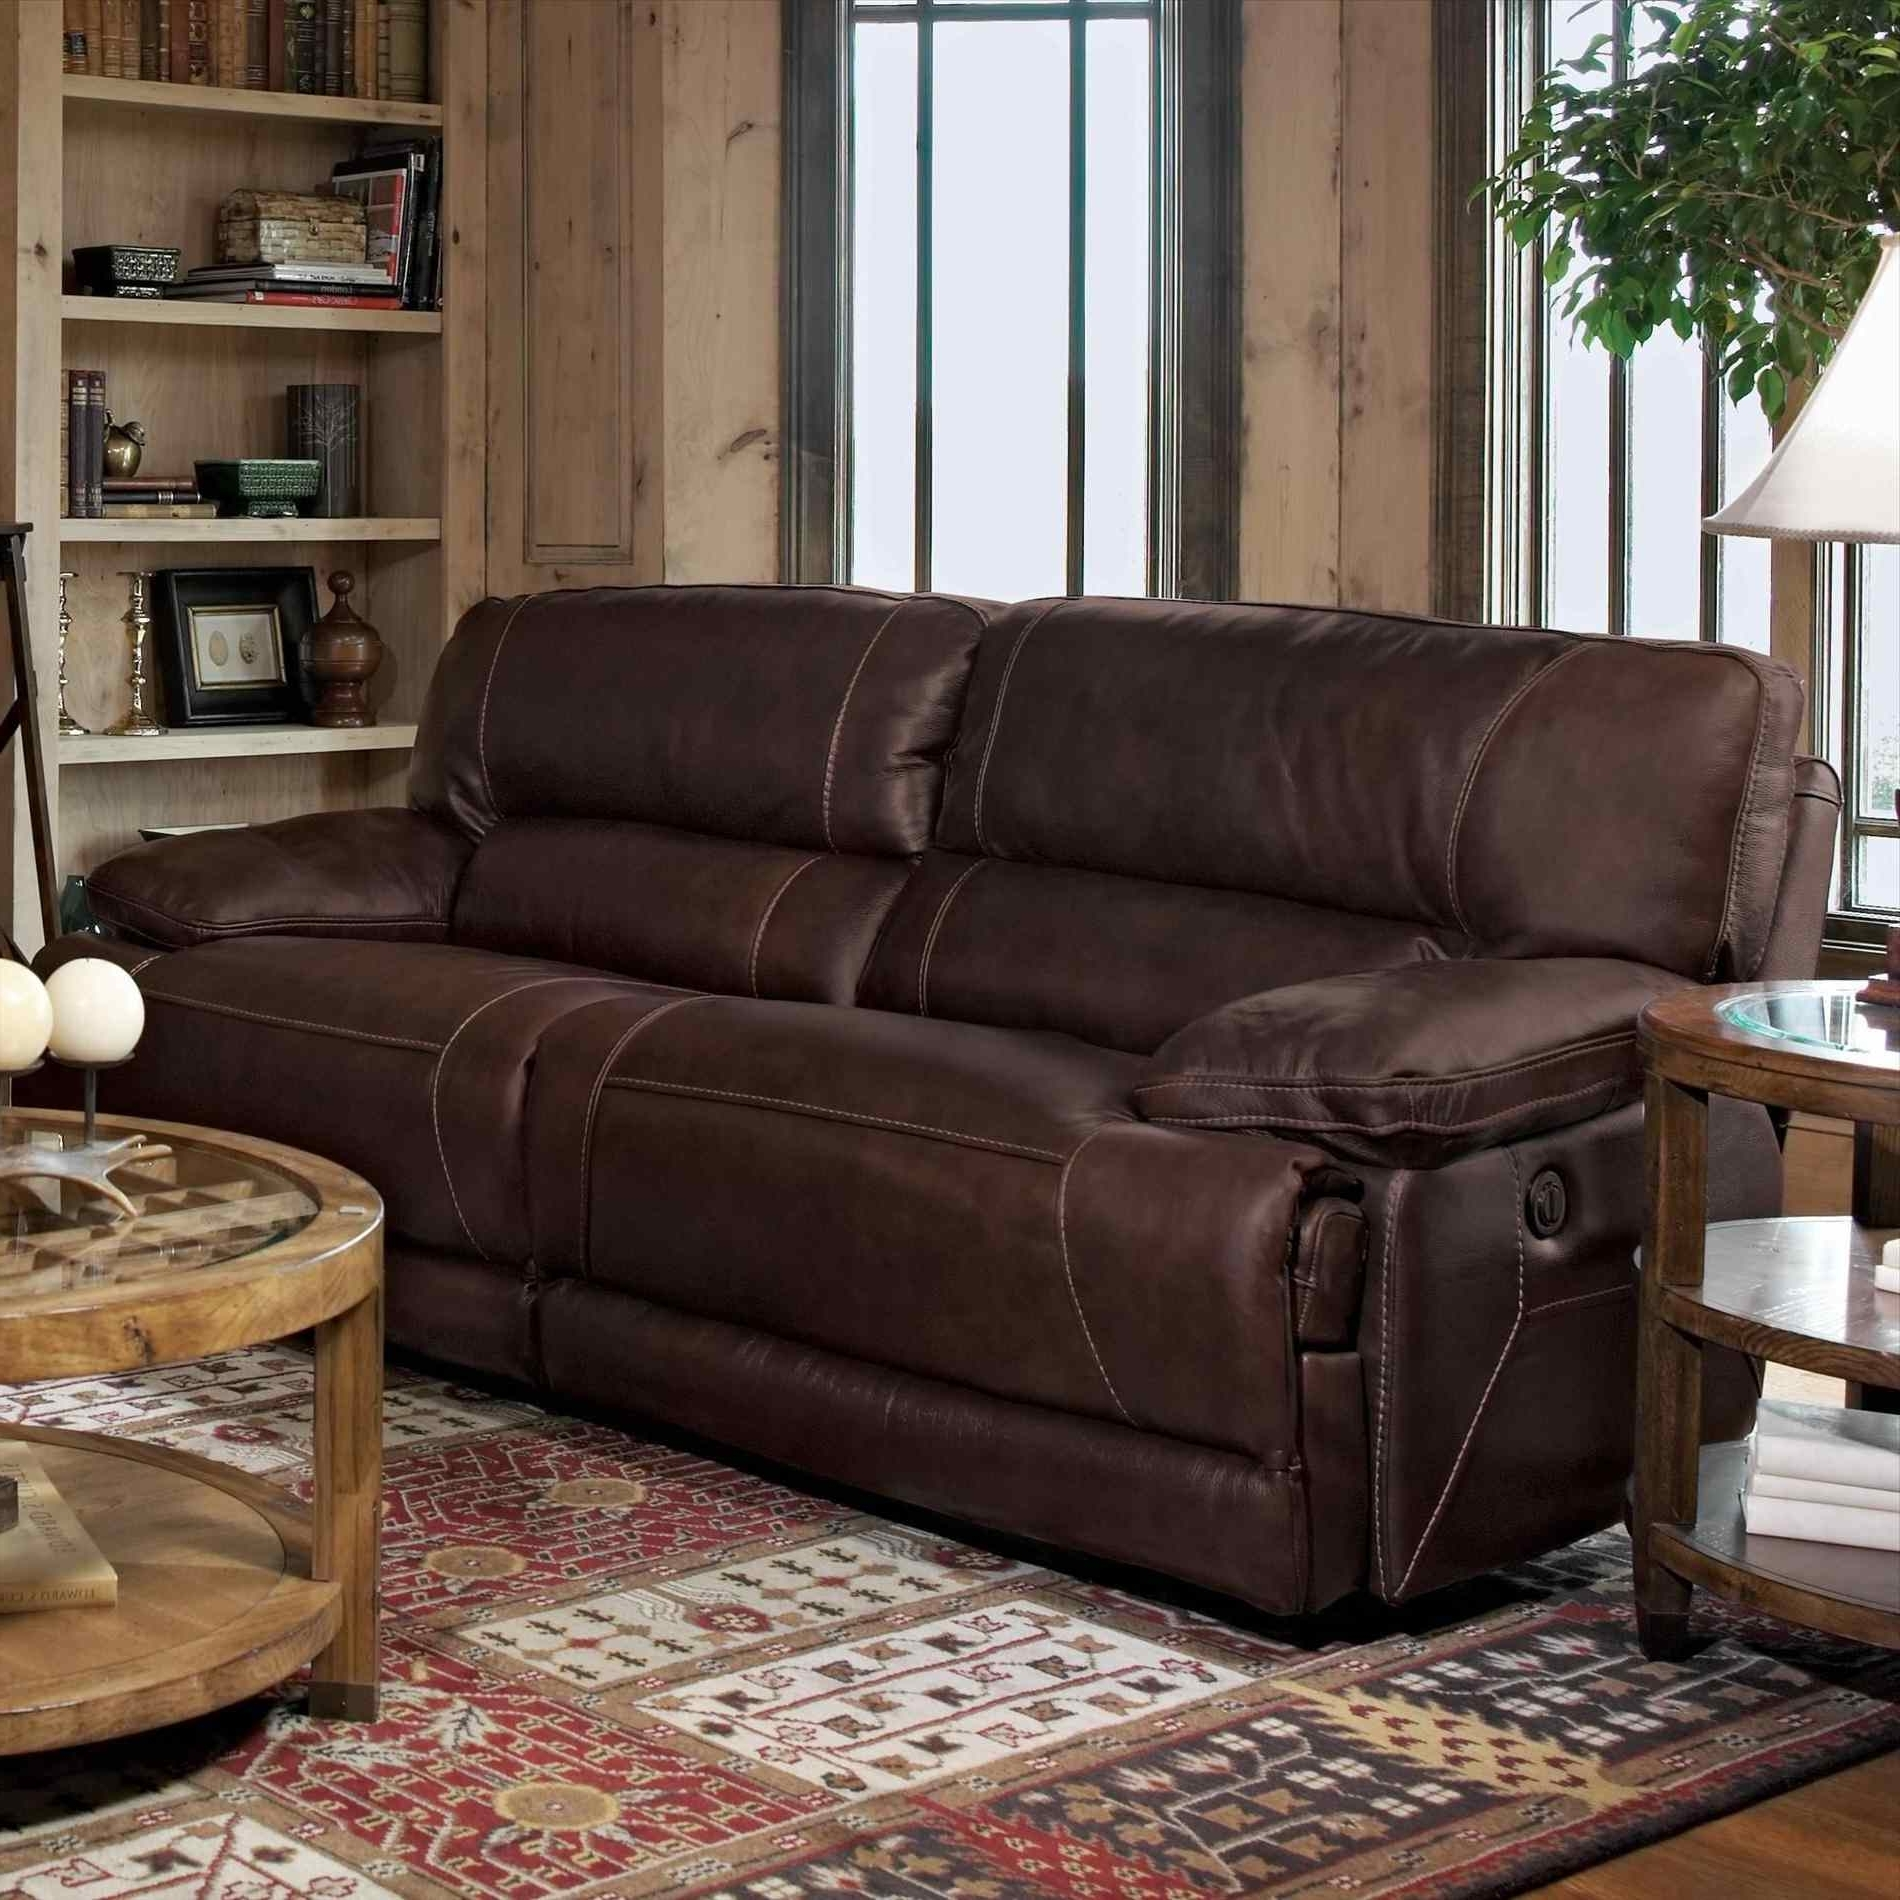 2017 Sectional Sofas At Sam's Club Within Sofa : Reclining White Sam S Club Review Centerfieldbarcom Sam (View 1 of 15)